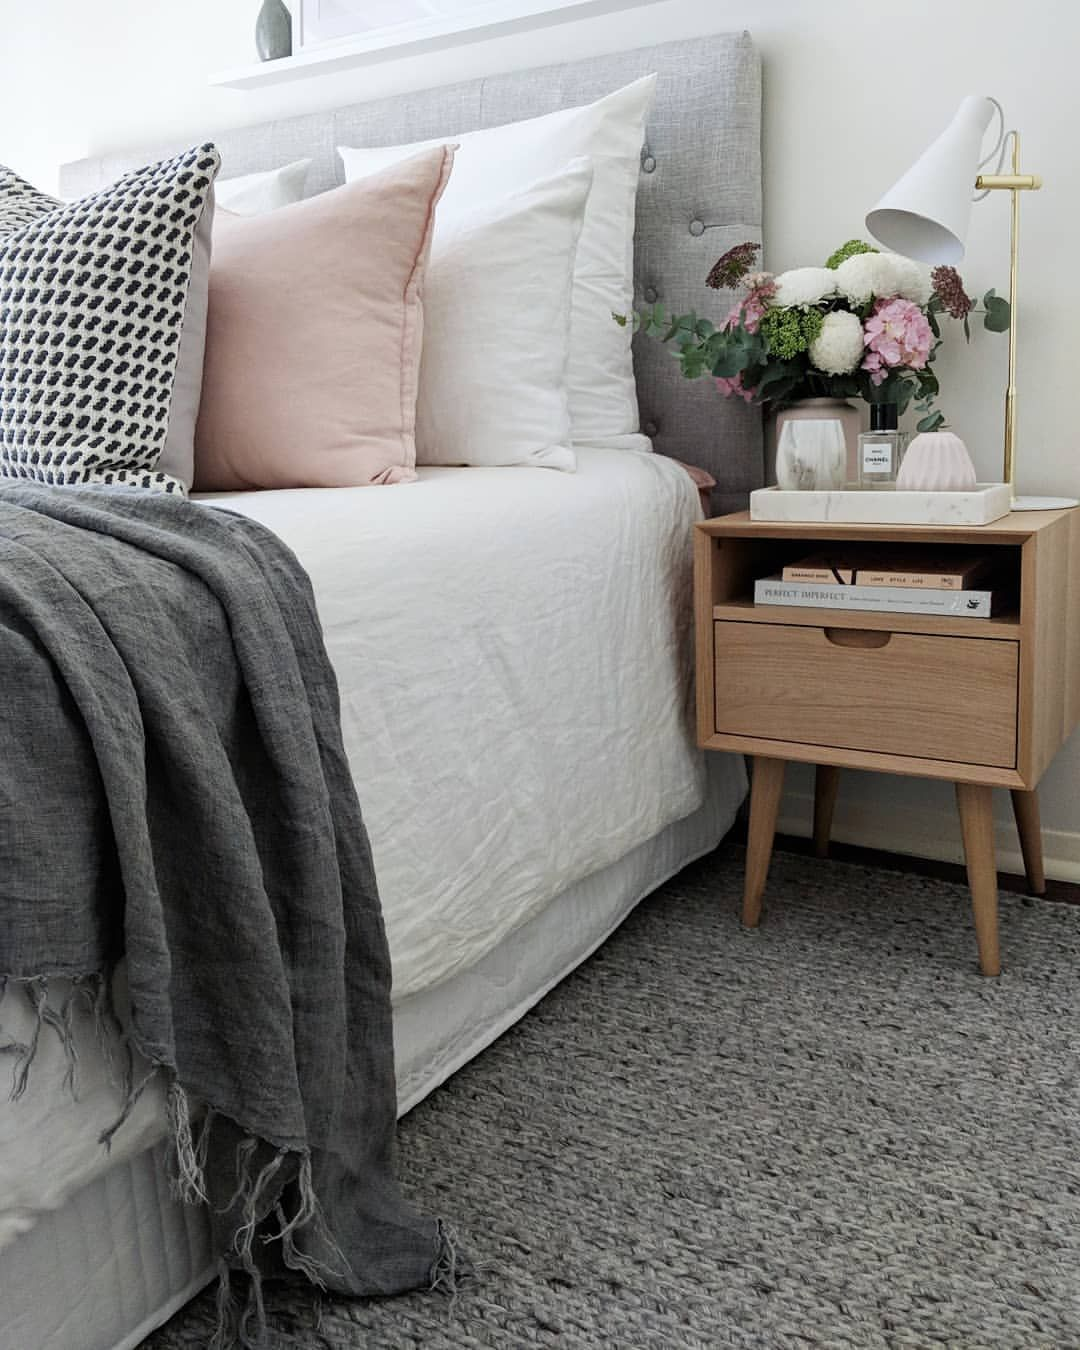 Cheap Furniture And Decor: Pin By Katie Pillera On New House